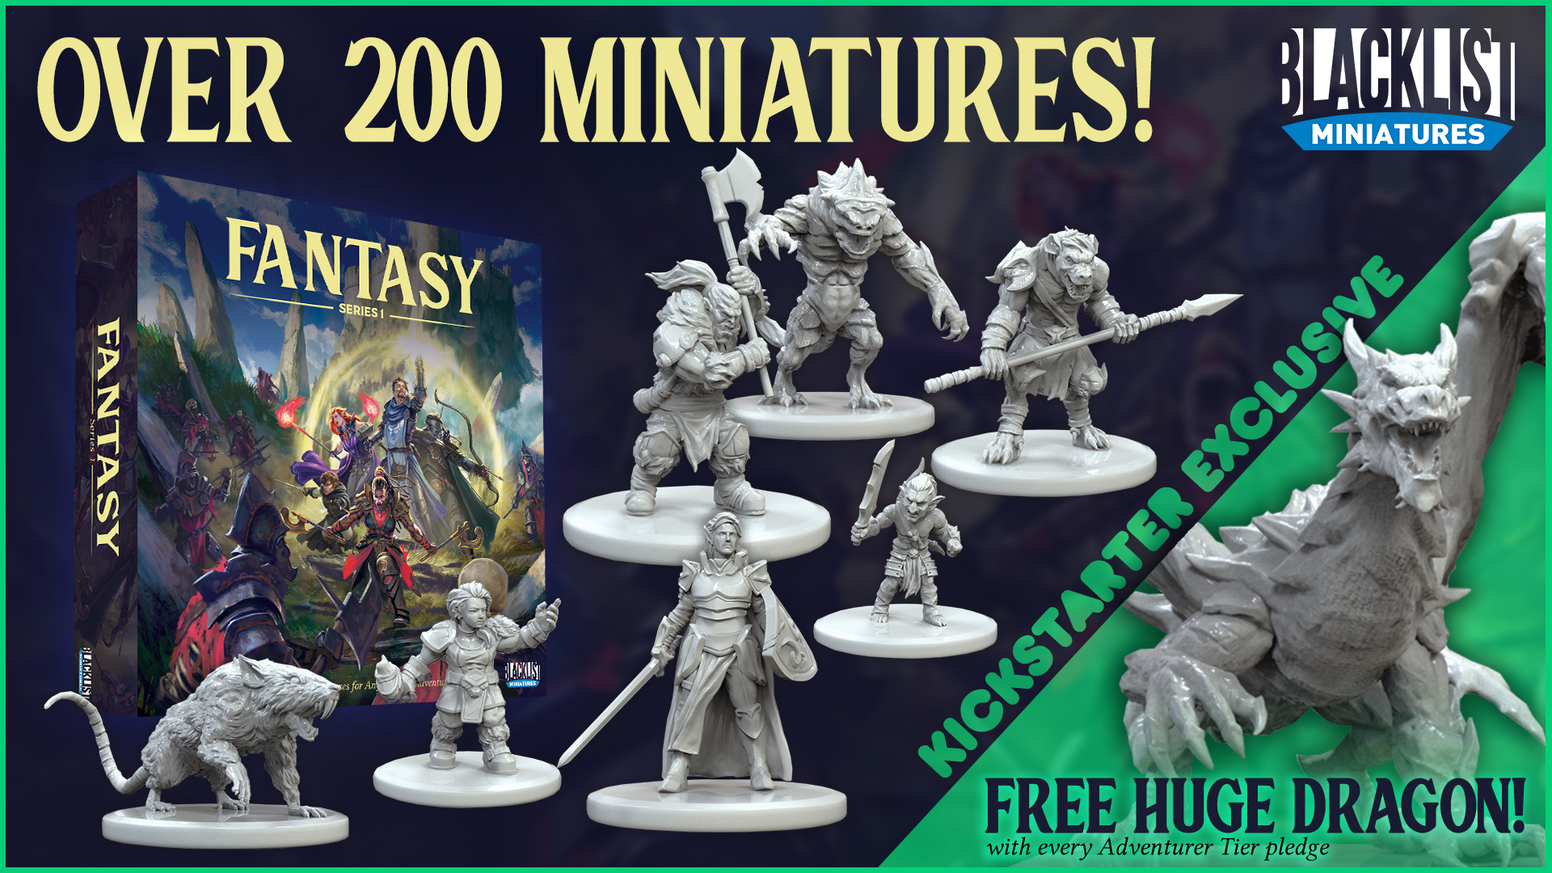 A new line of detailed plastic miniatures for use in any fantasy game.